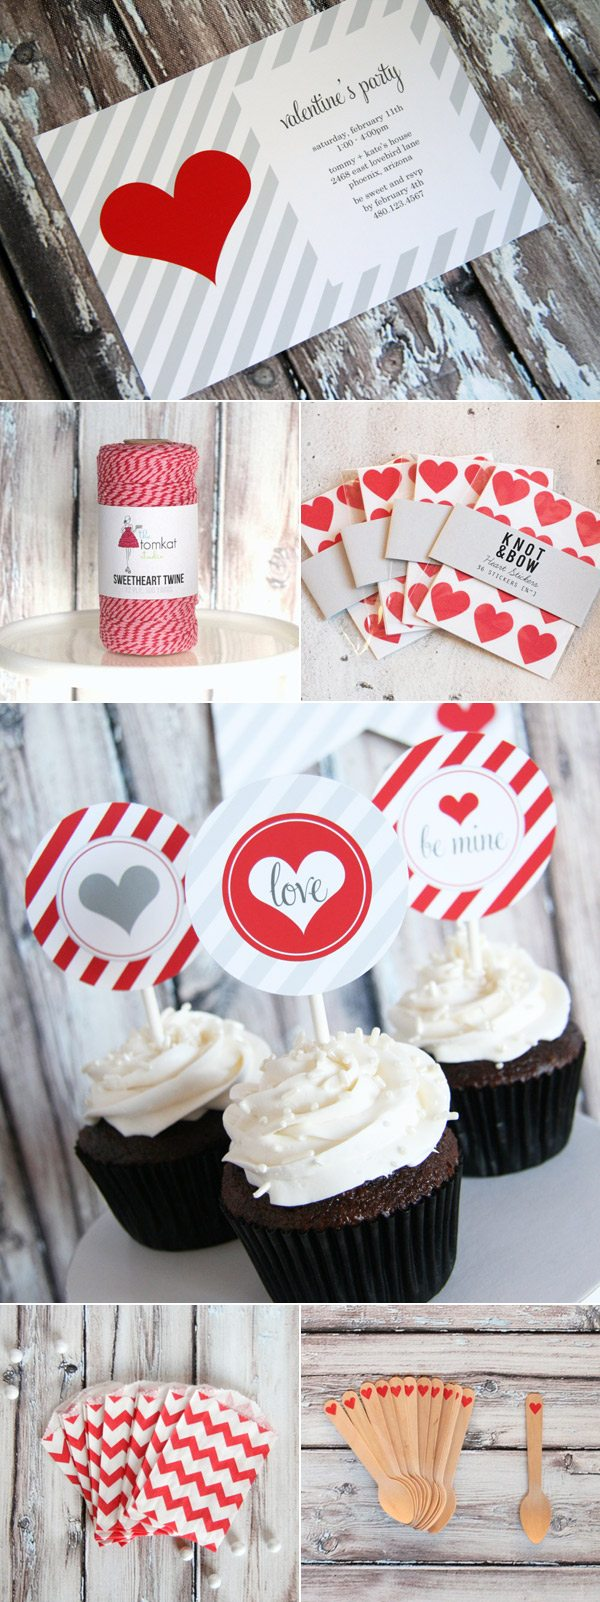 Valentines Day party goodies from The TomKat Studio on The Sweetest Occasion